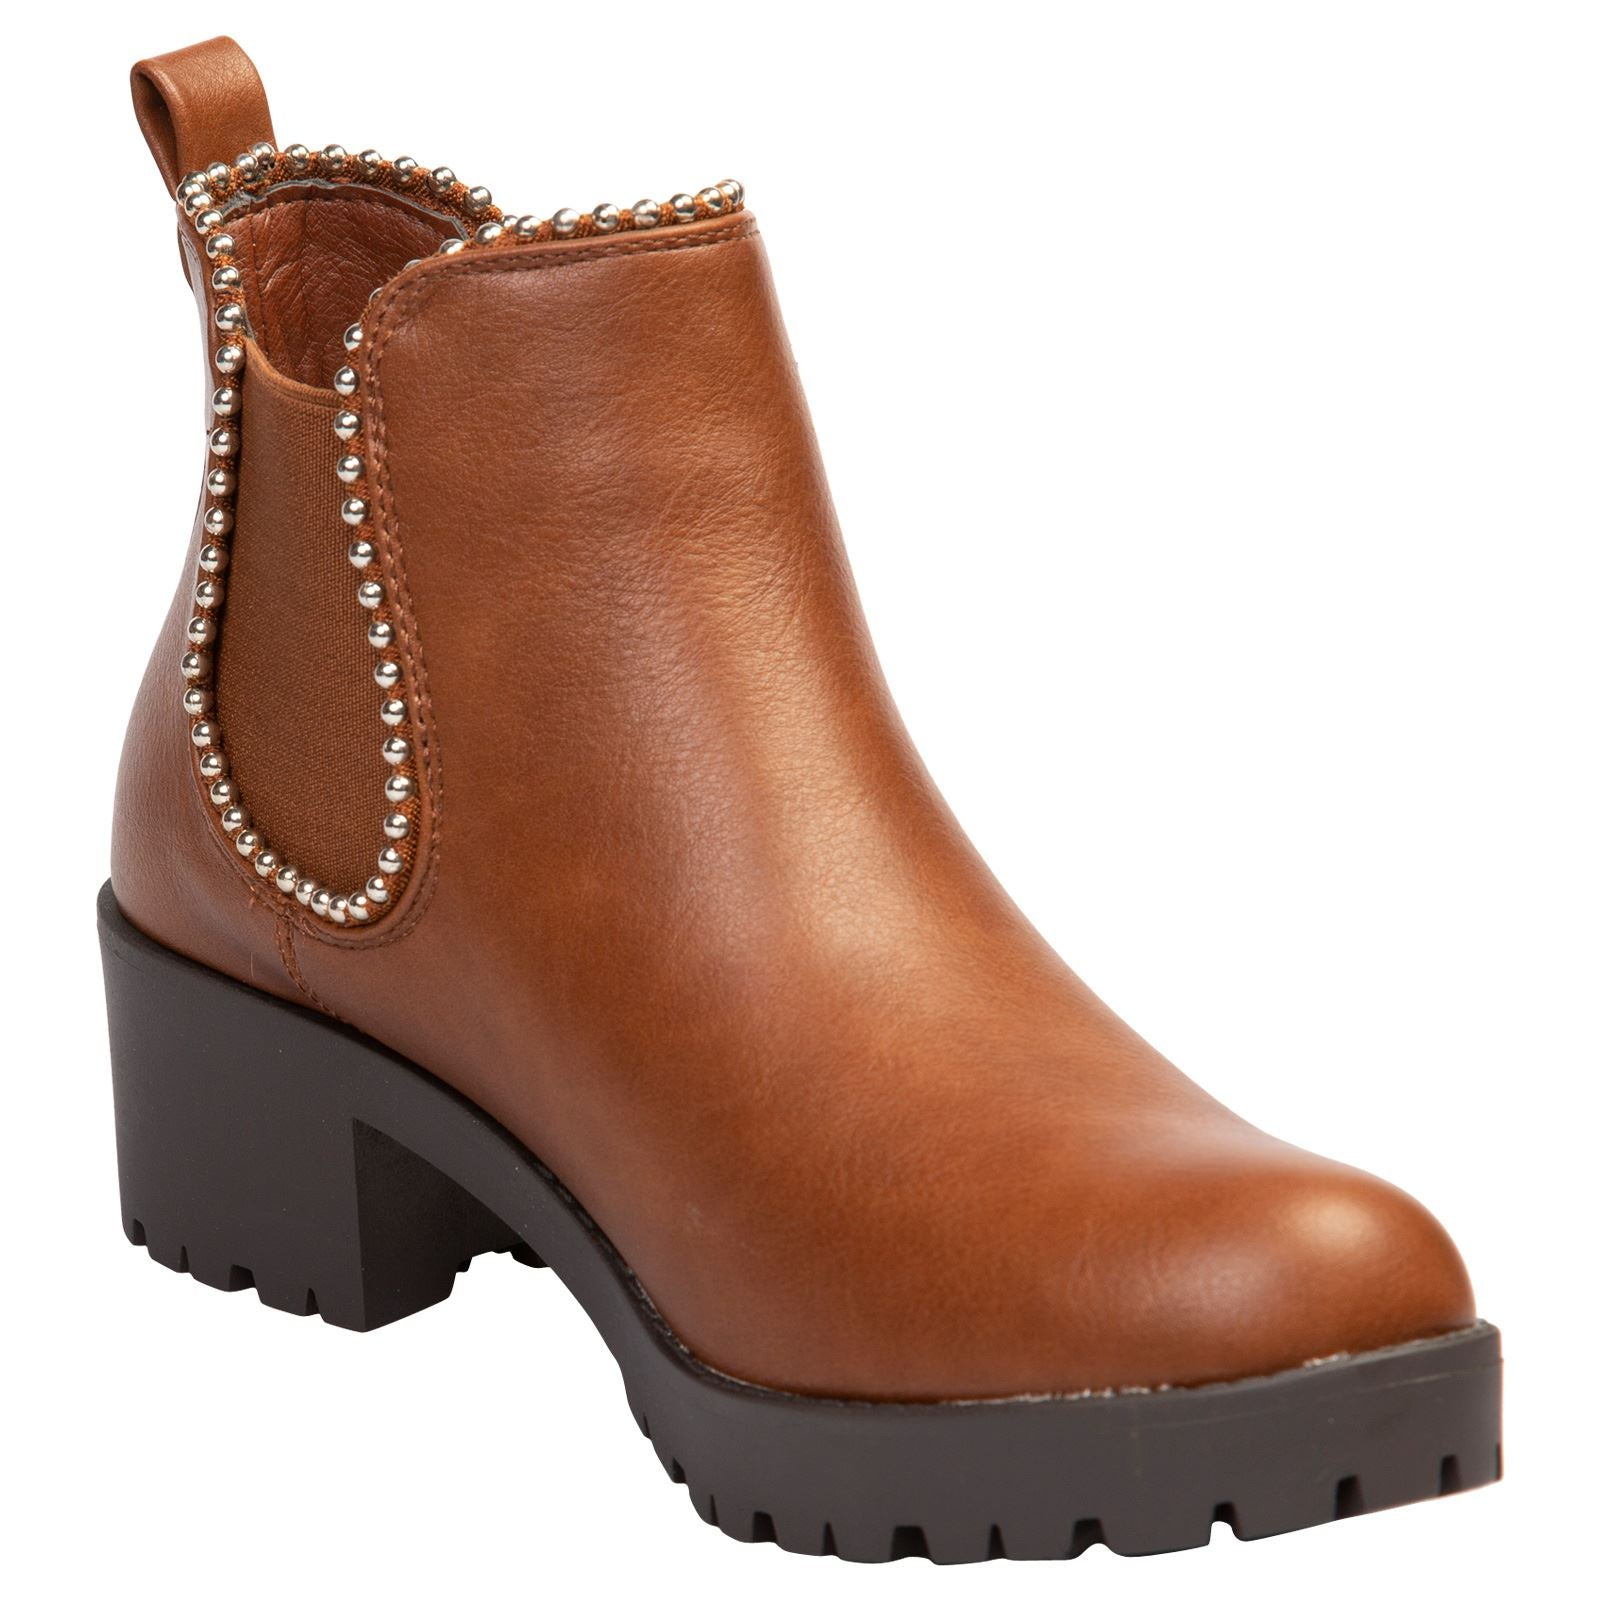 Judie Chelsea Ankle Boots in Camel Faux Leather - Feet First Fashion